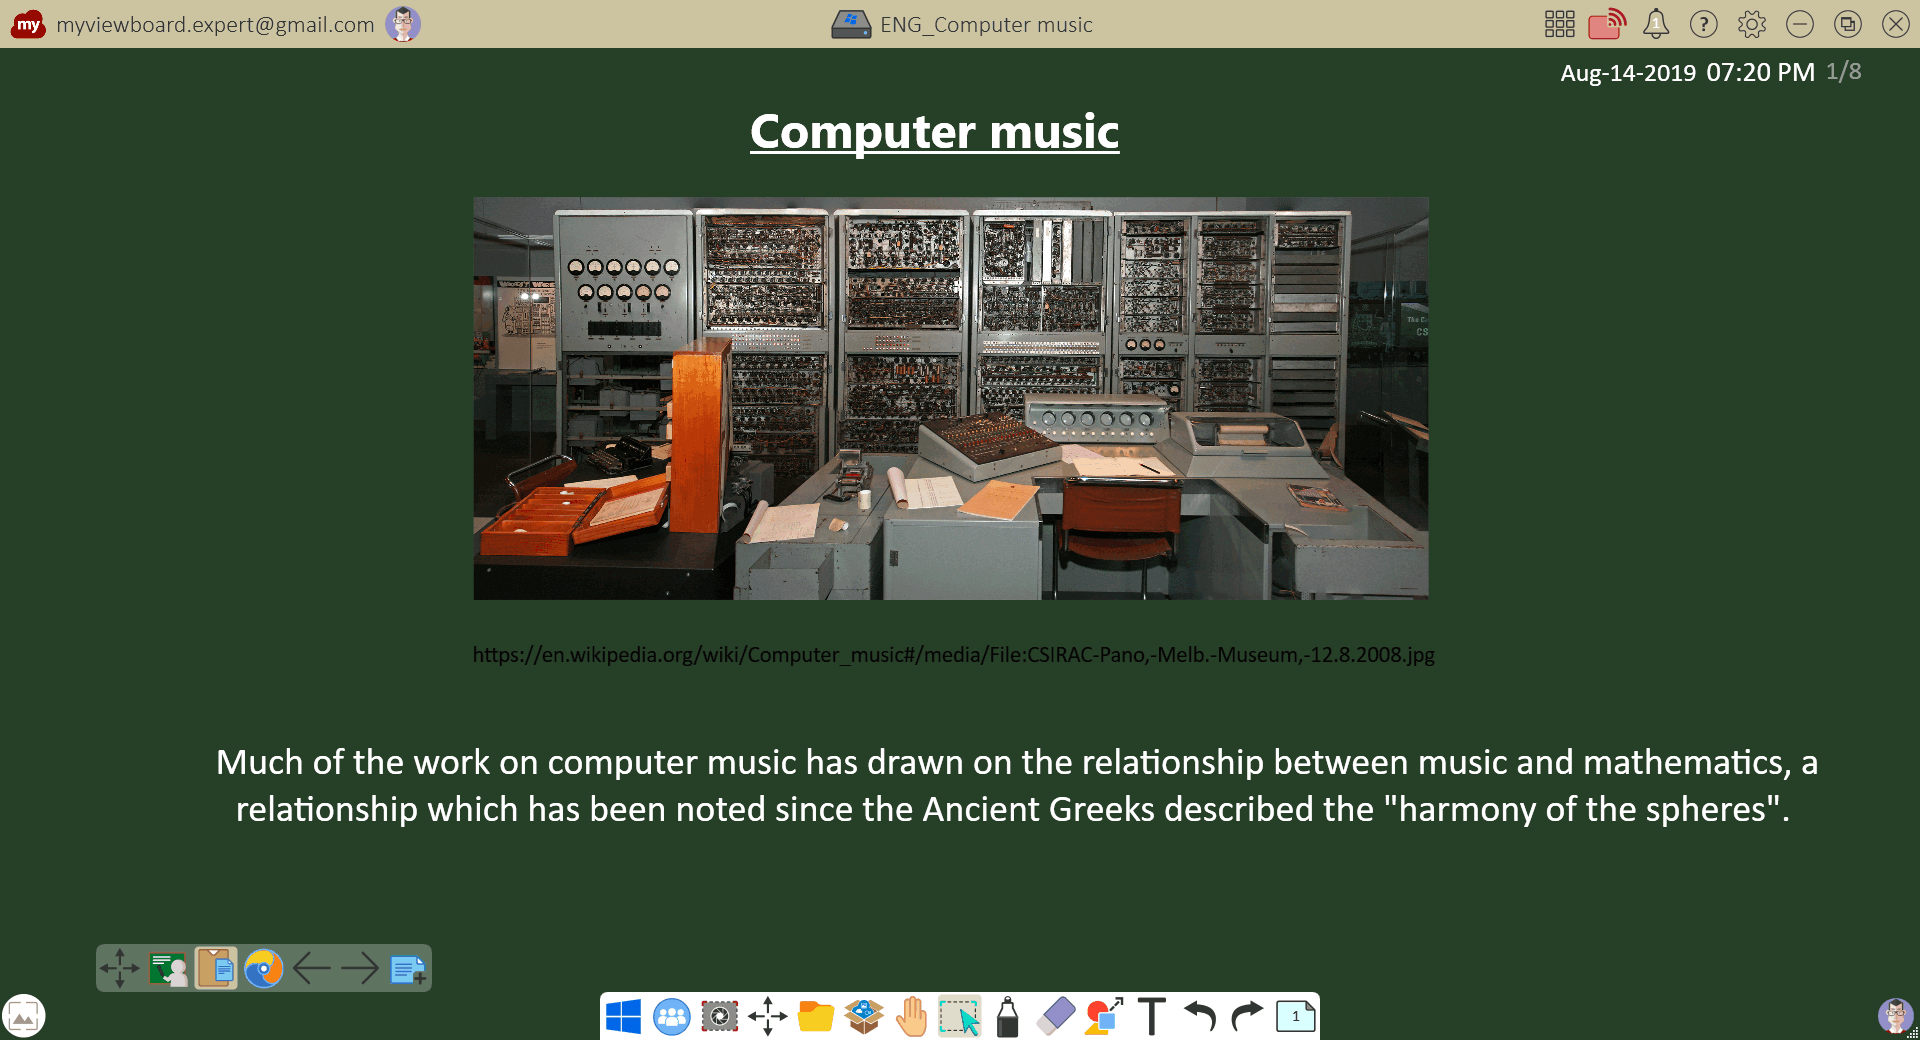 ENG Computer music.png